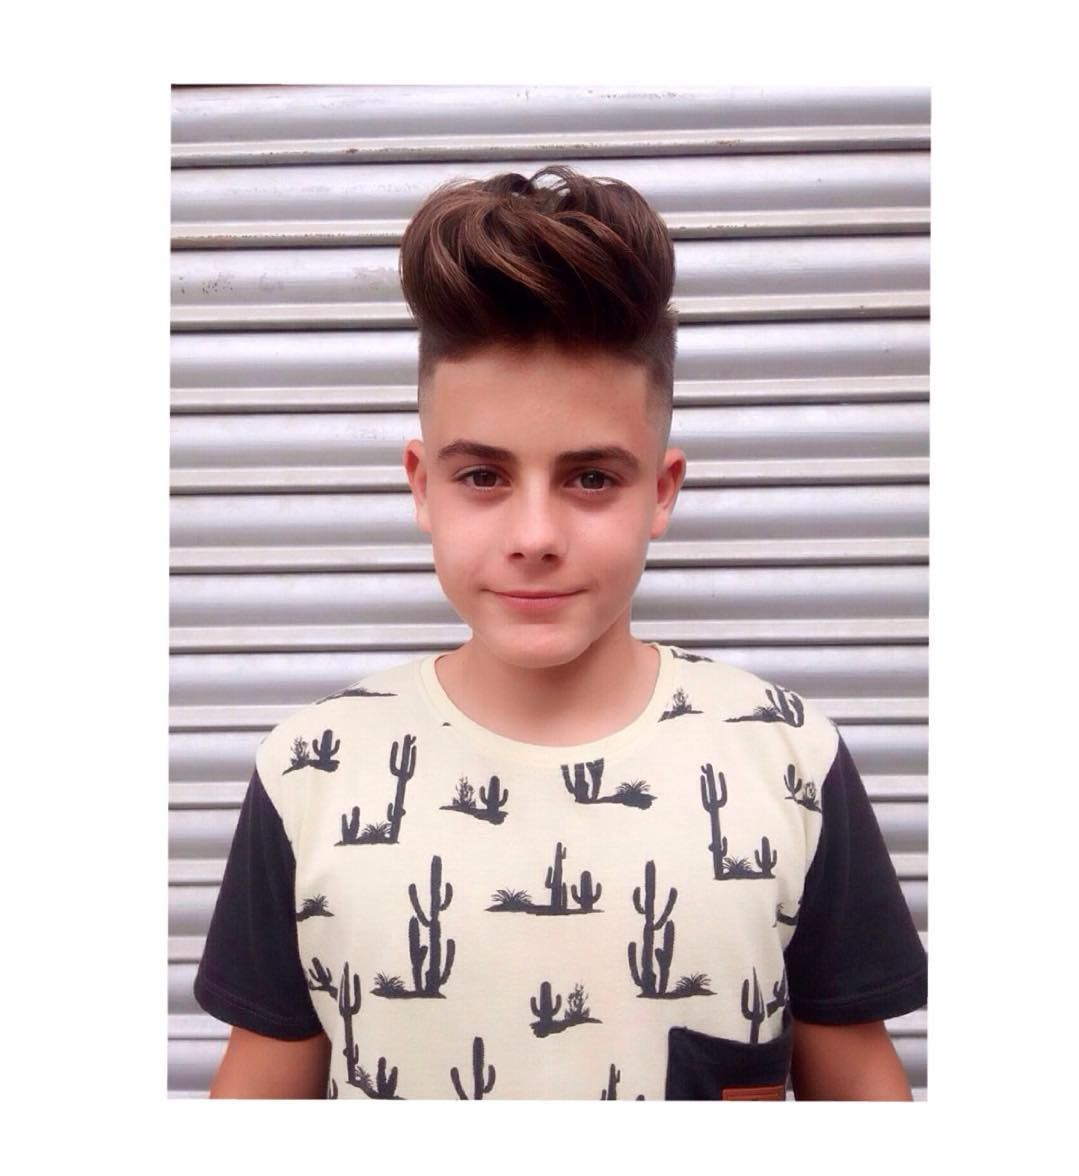 Cool Hairstyles for Boys  Haircut styles Hair style and Hair cuts